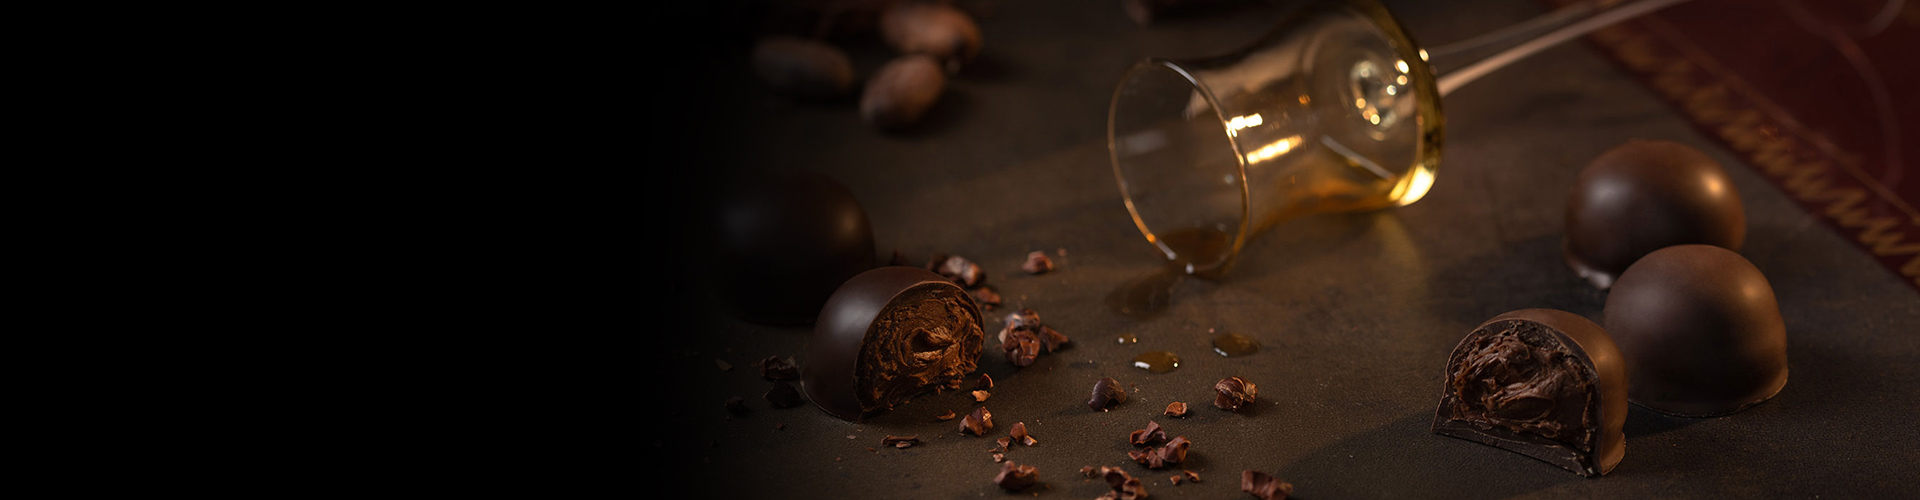 The ancient typical recipes of chocolate